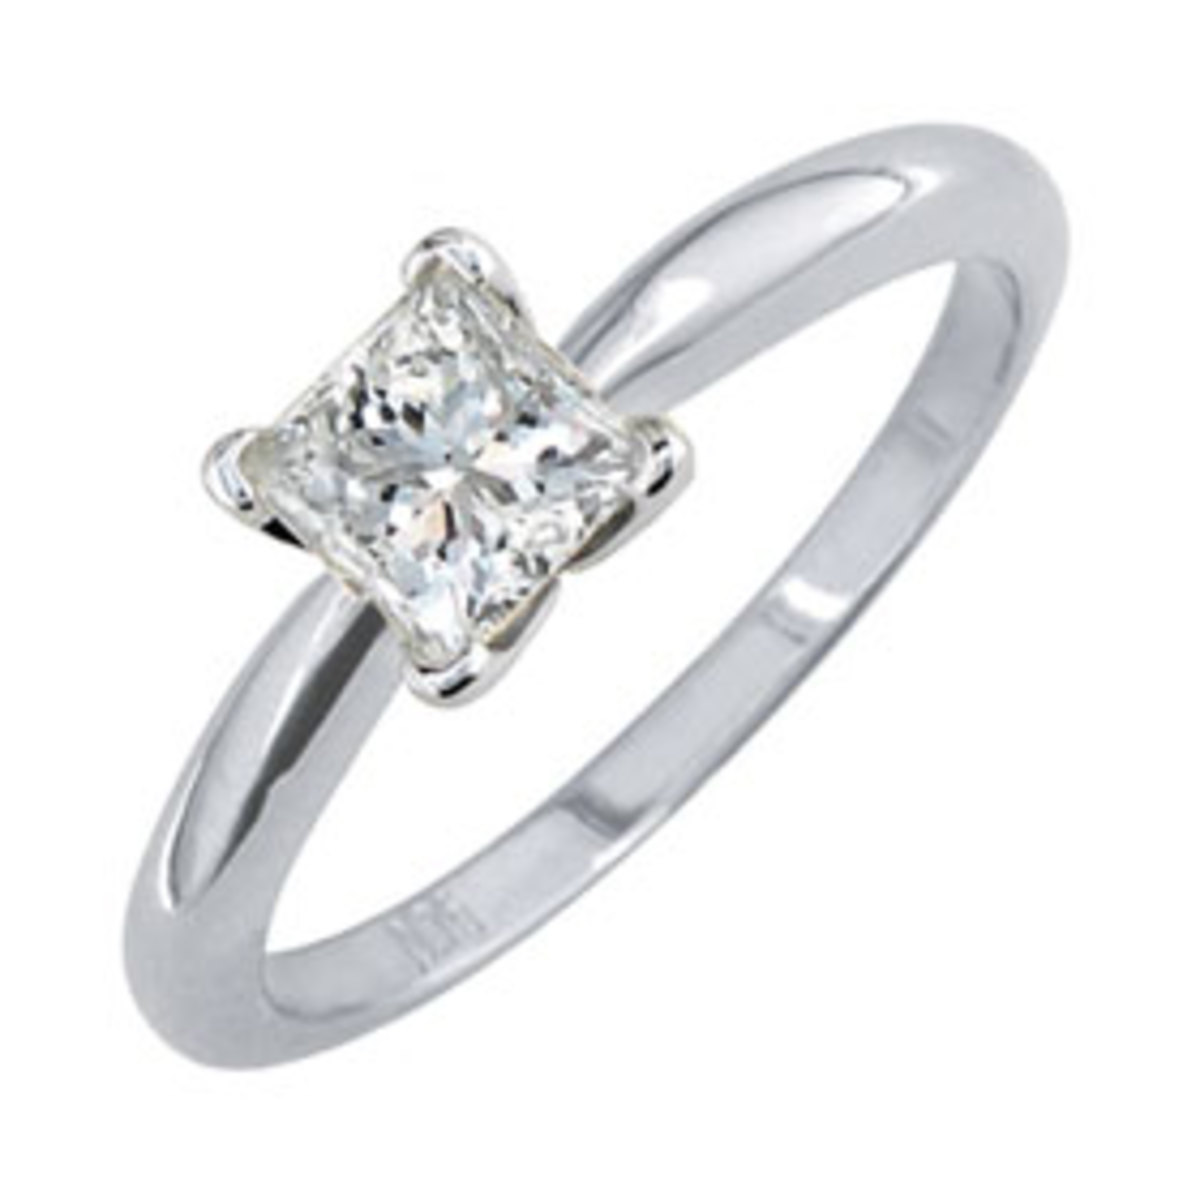 Princess Cut Diamond In White Gold Solitare Setting